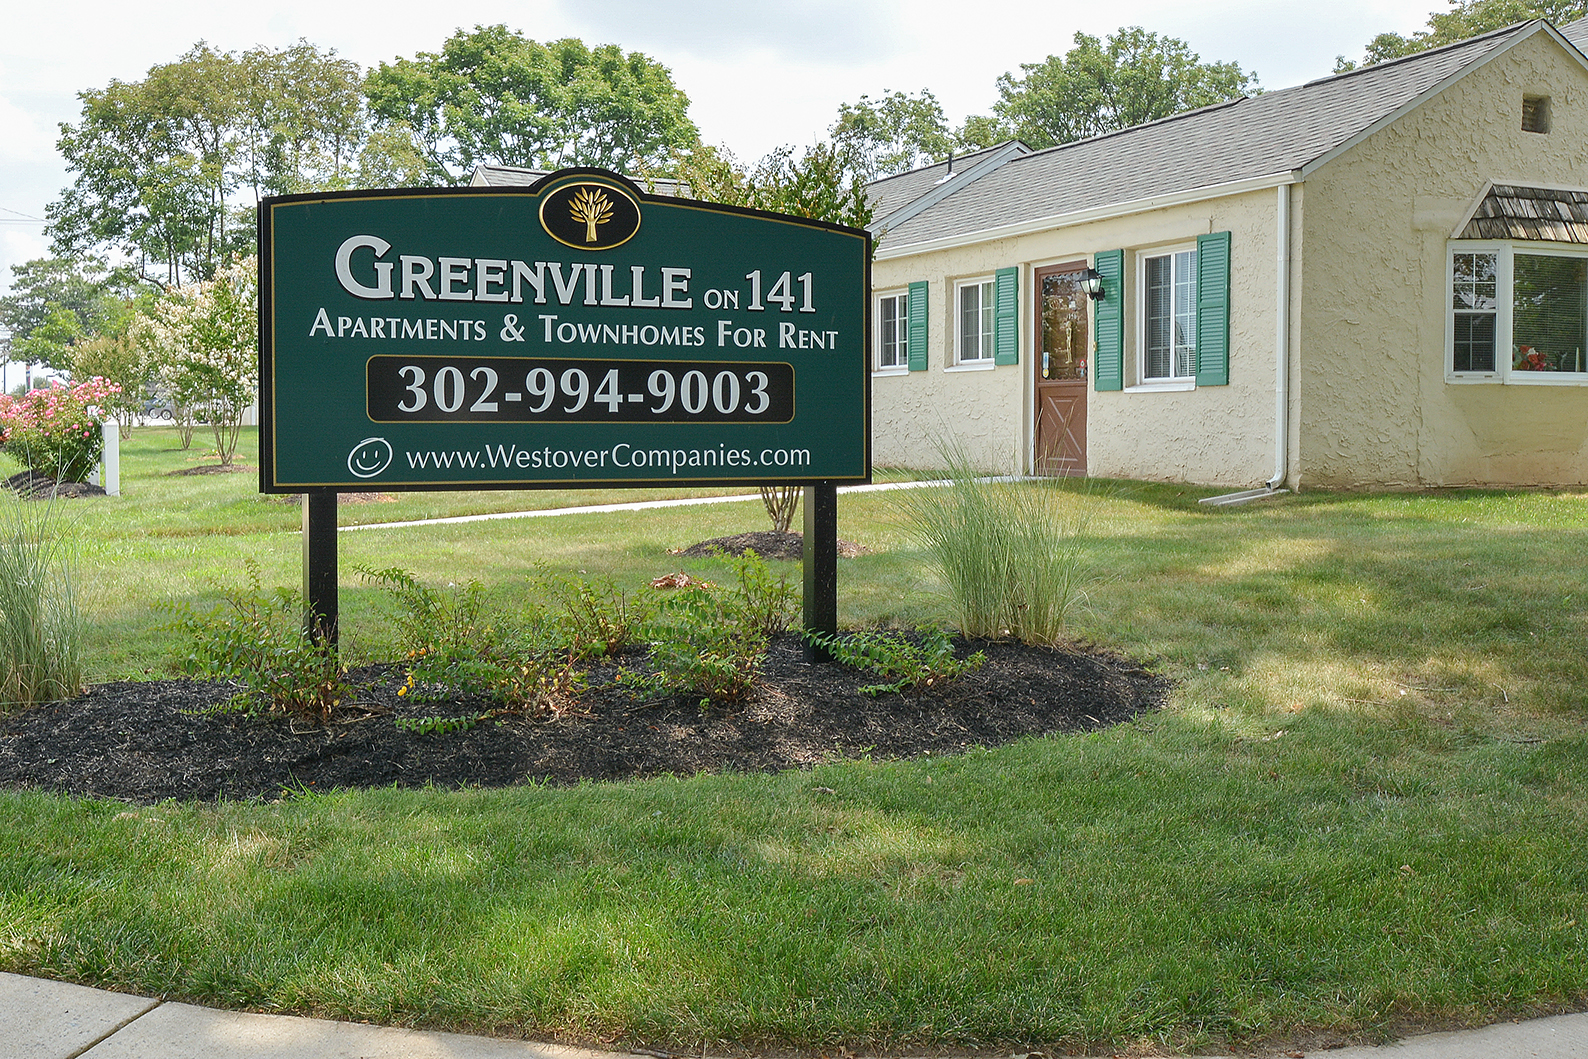 Greenville on 141 Green Welcome Sign | Apartments Near Wilmington DE